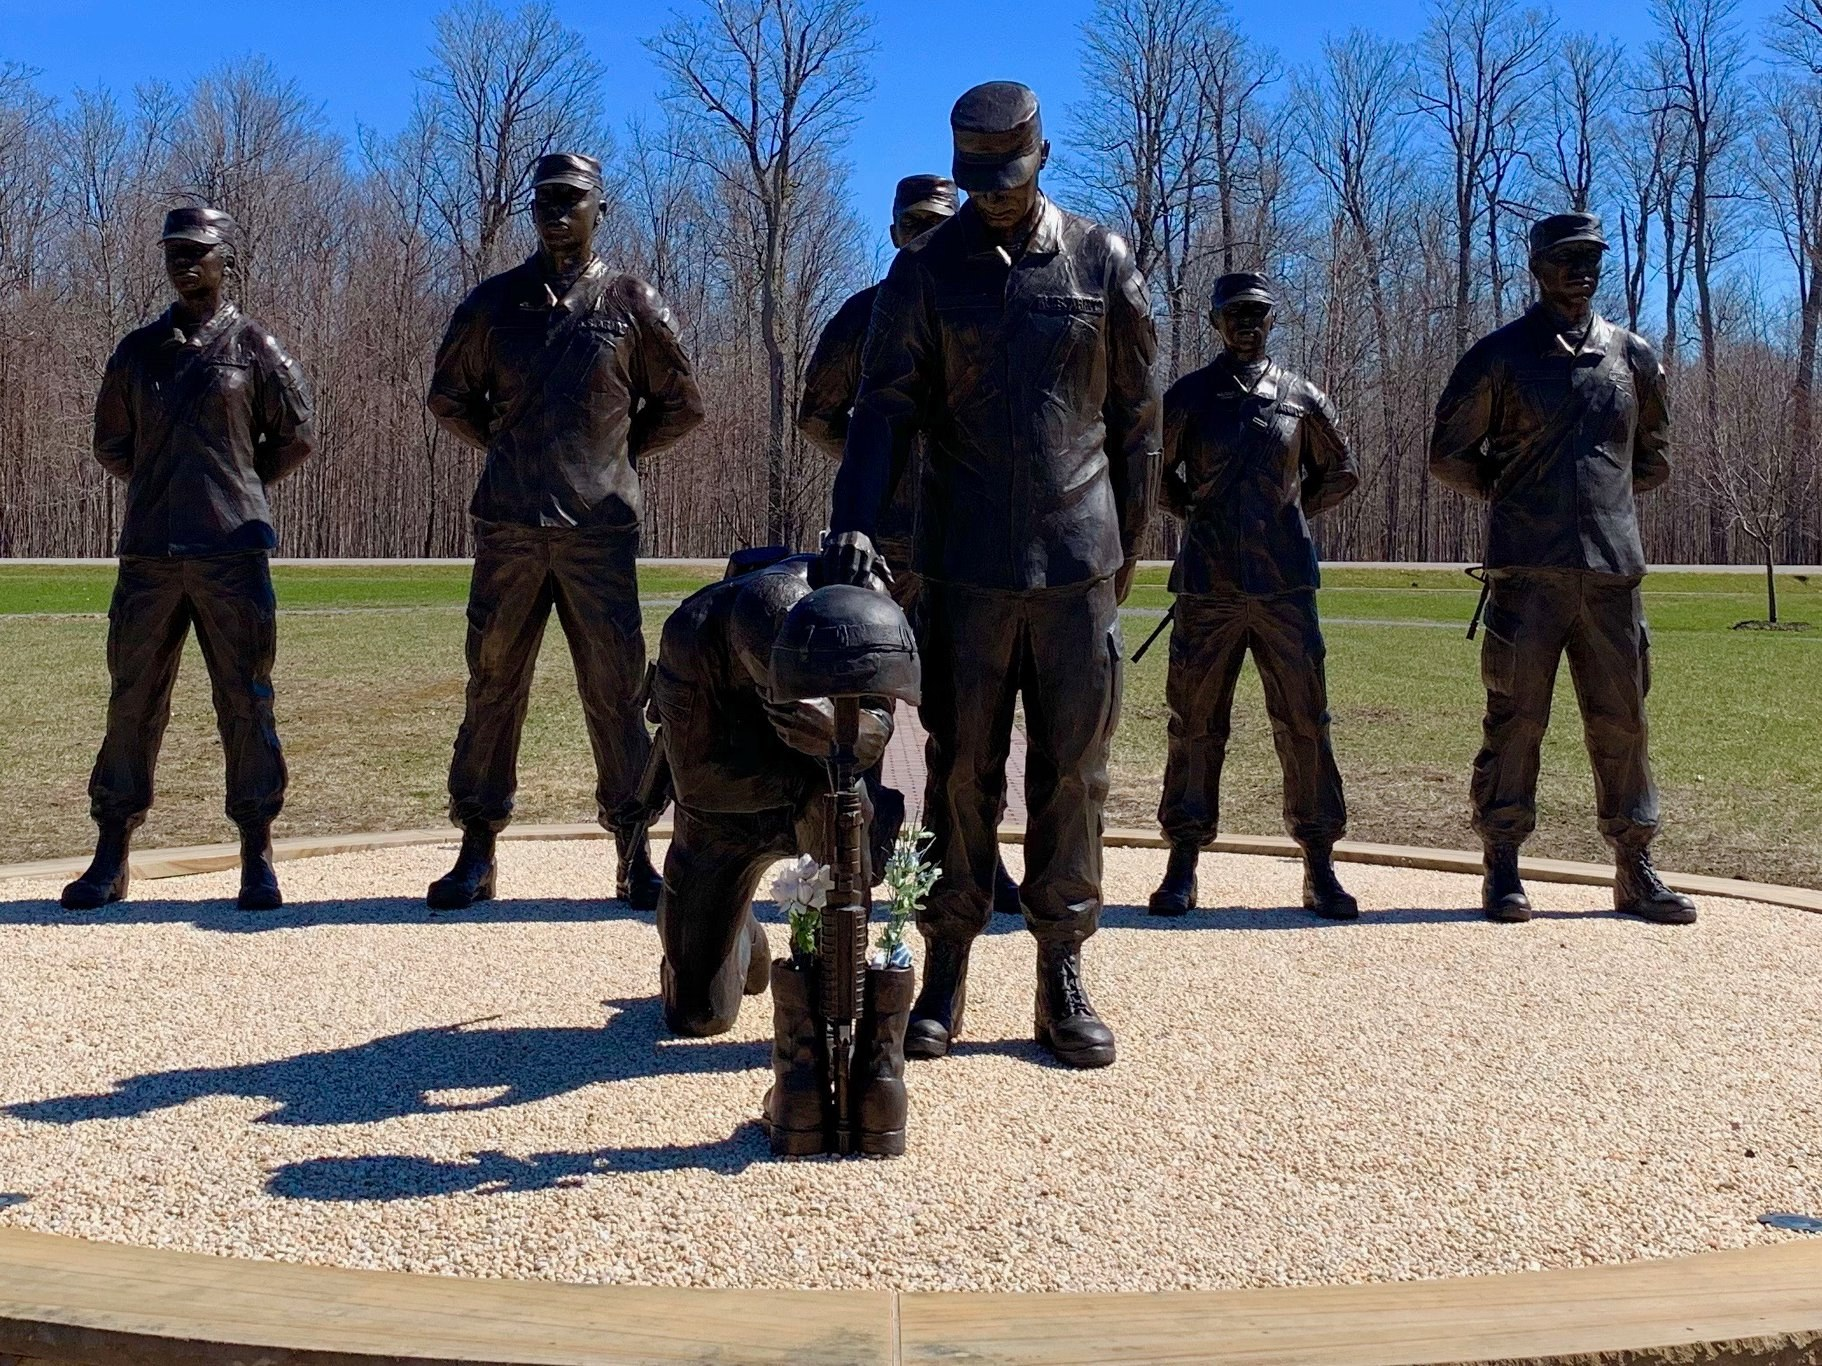 Soldier, Military, Statue, Memorial